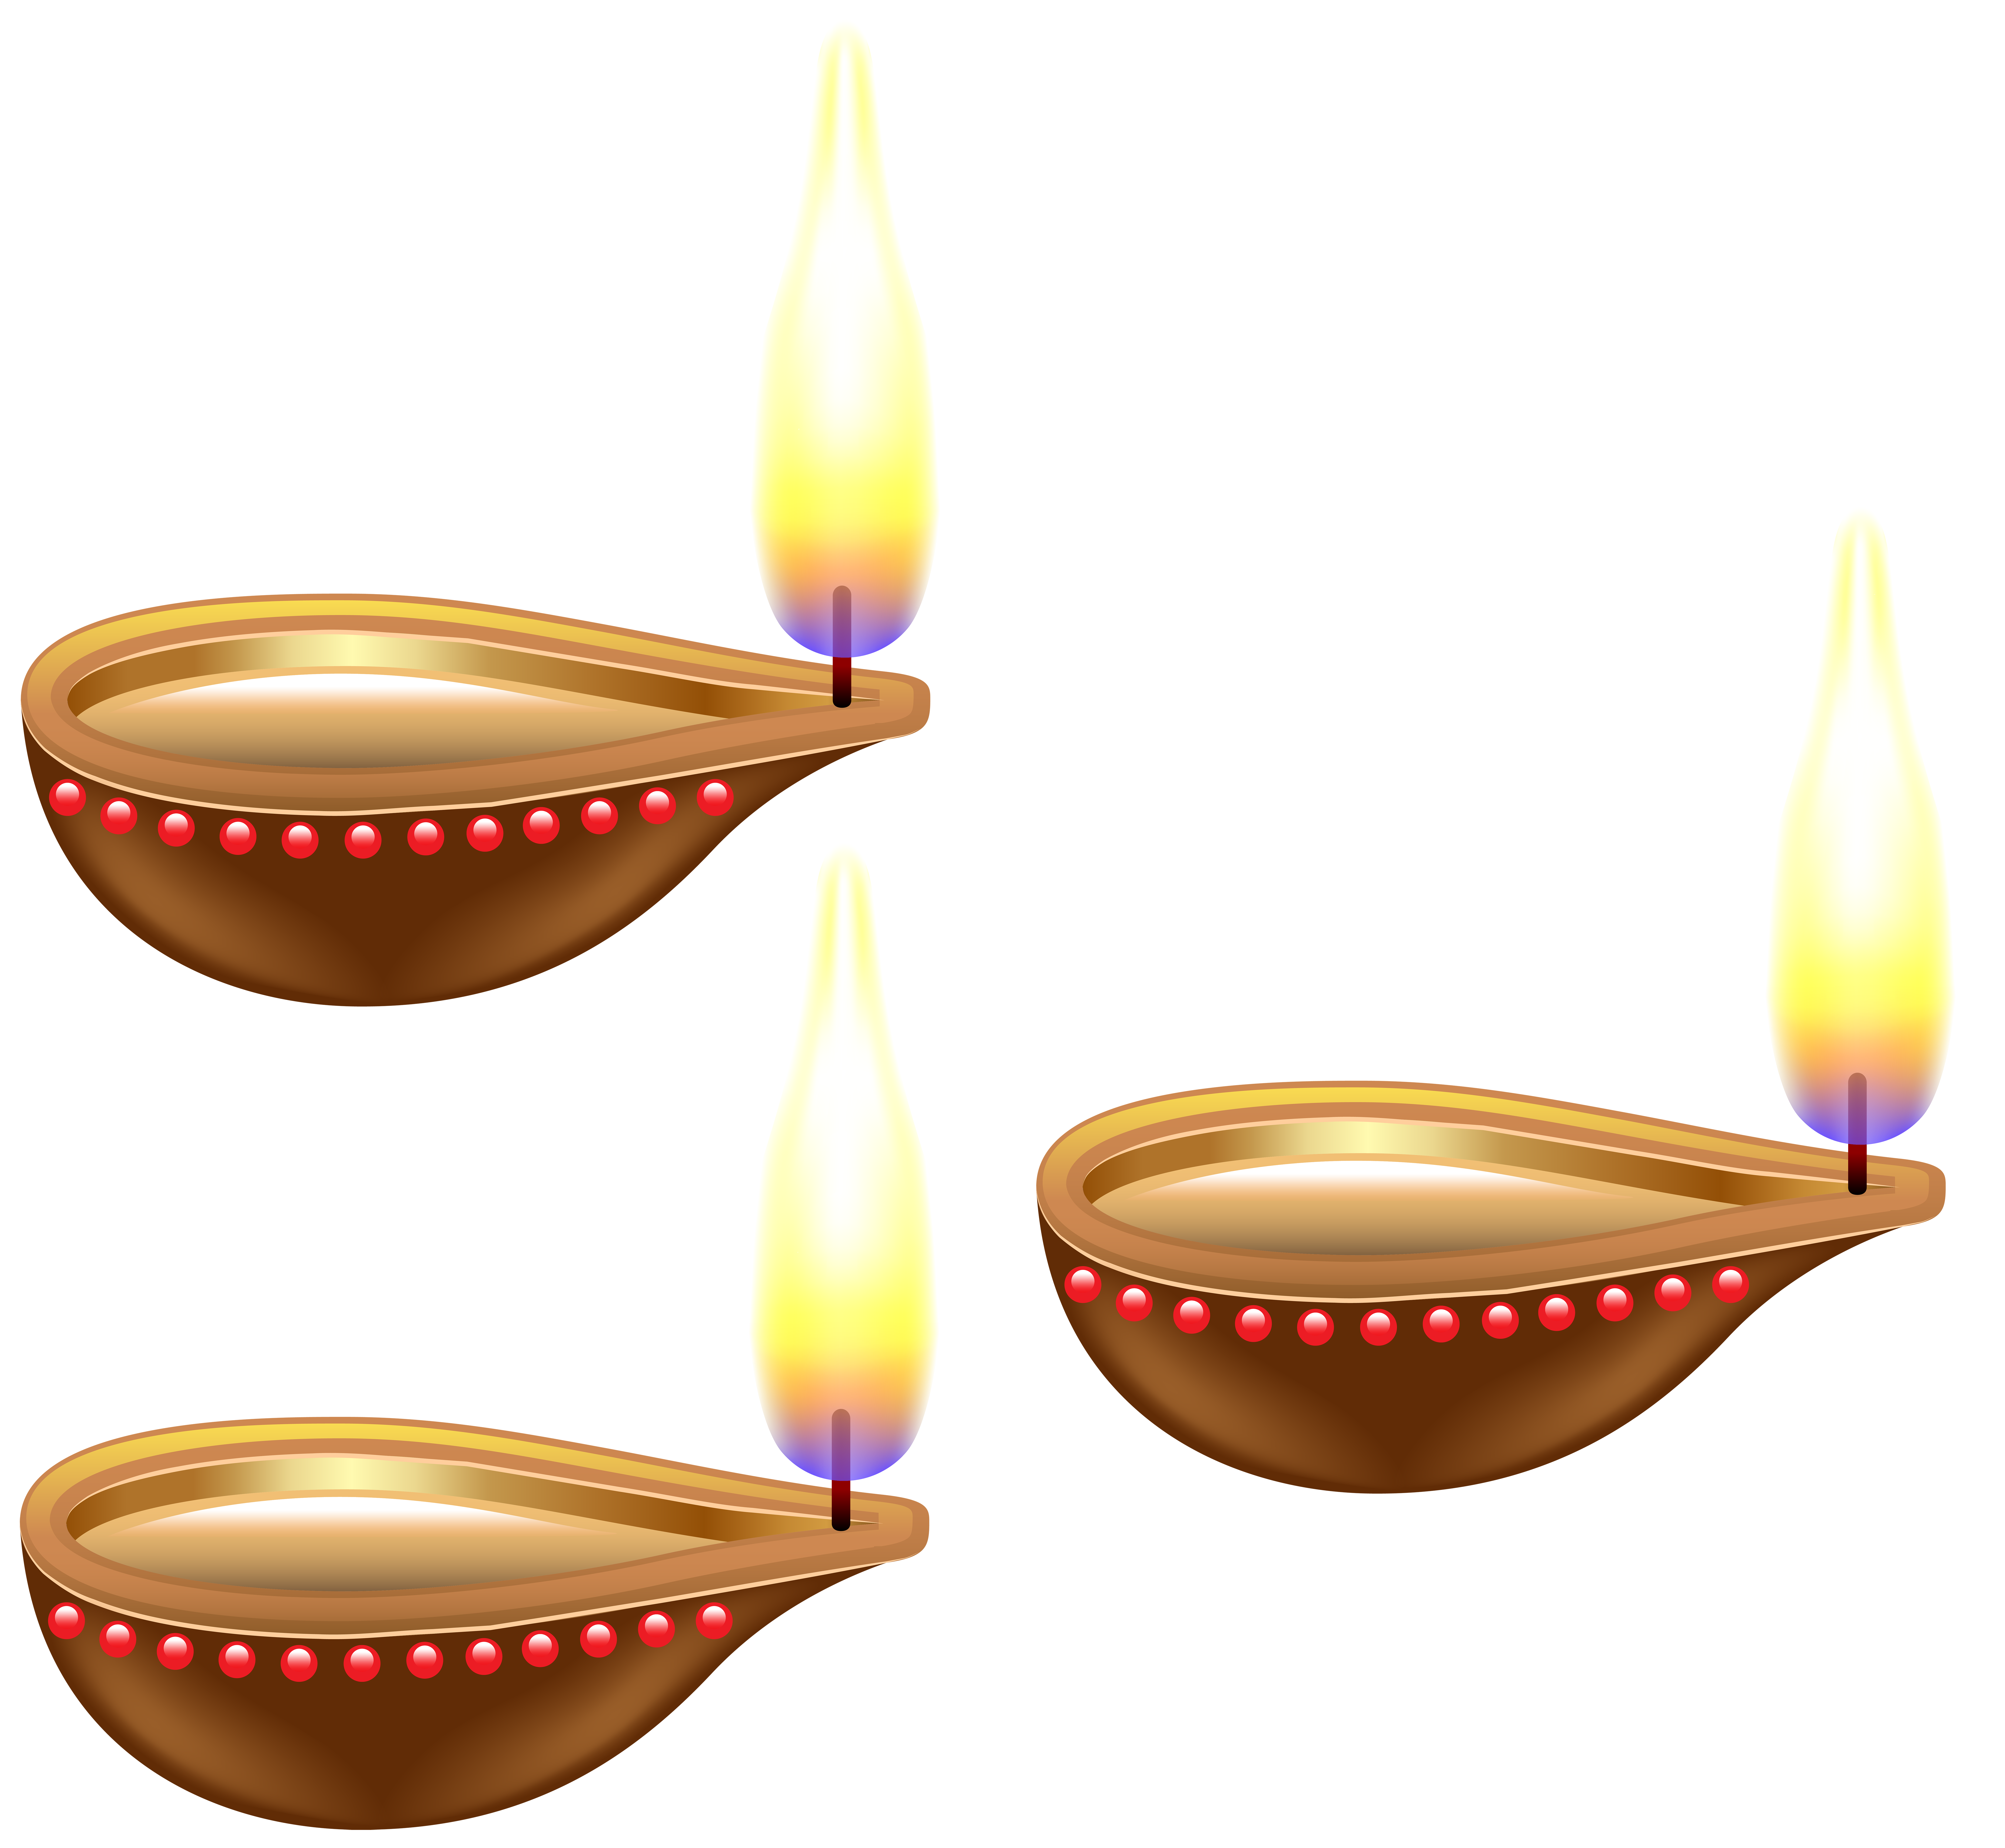 Lamp clipart diva lamp. Indian oil trendy abstract